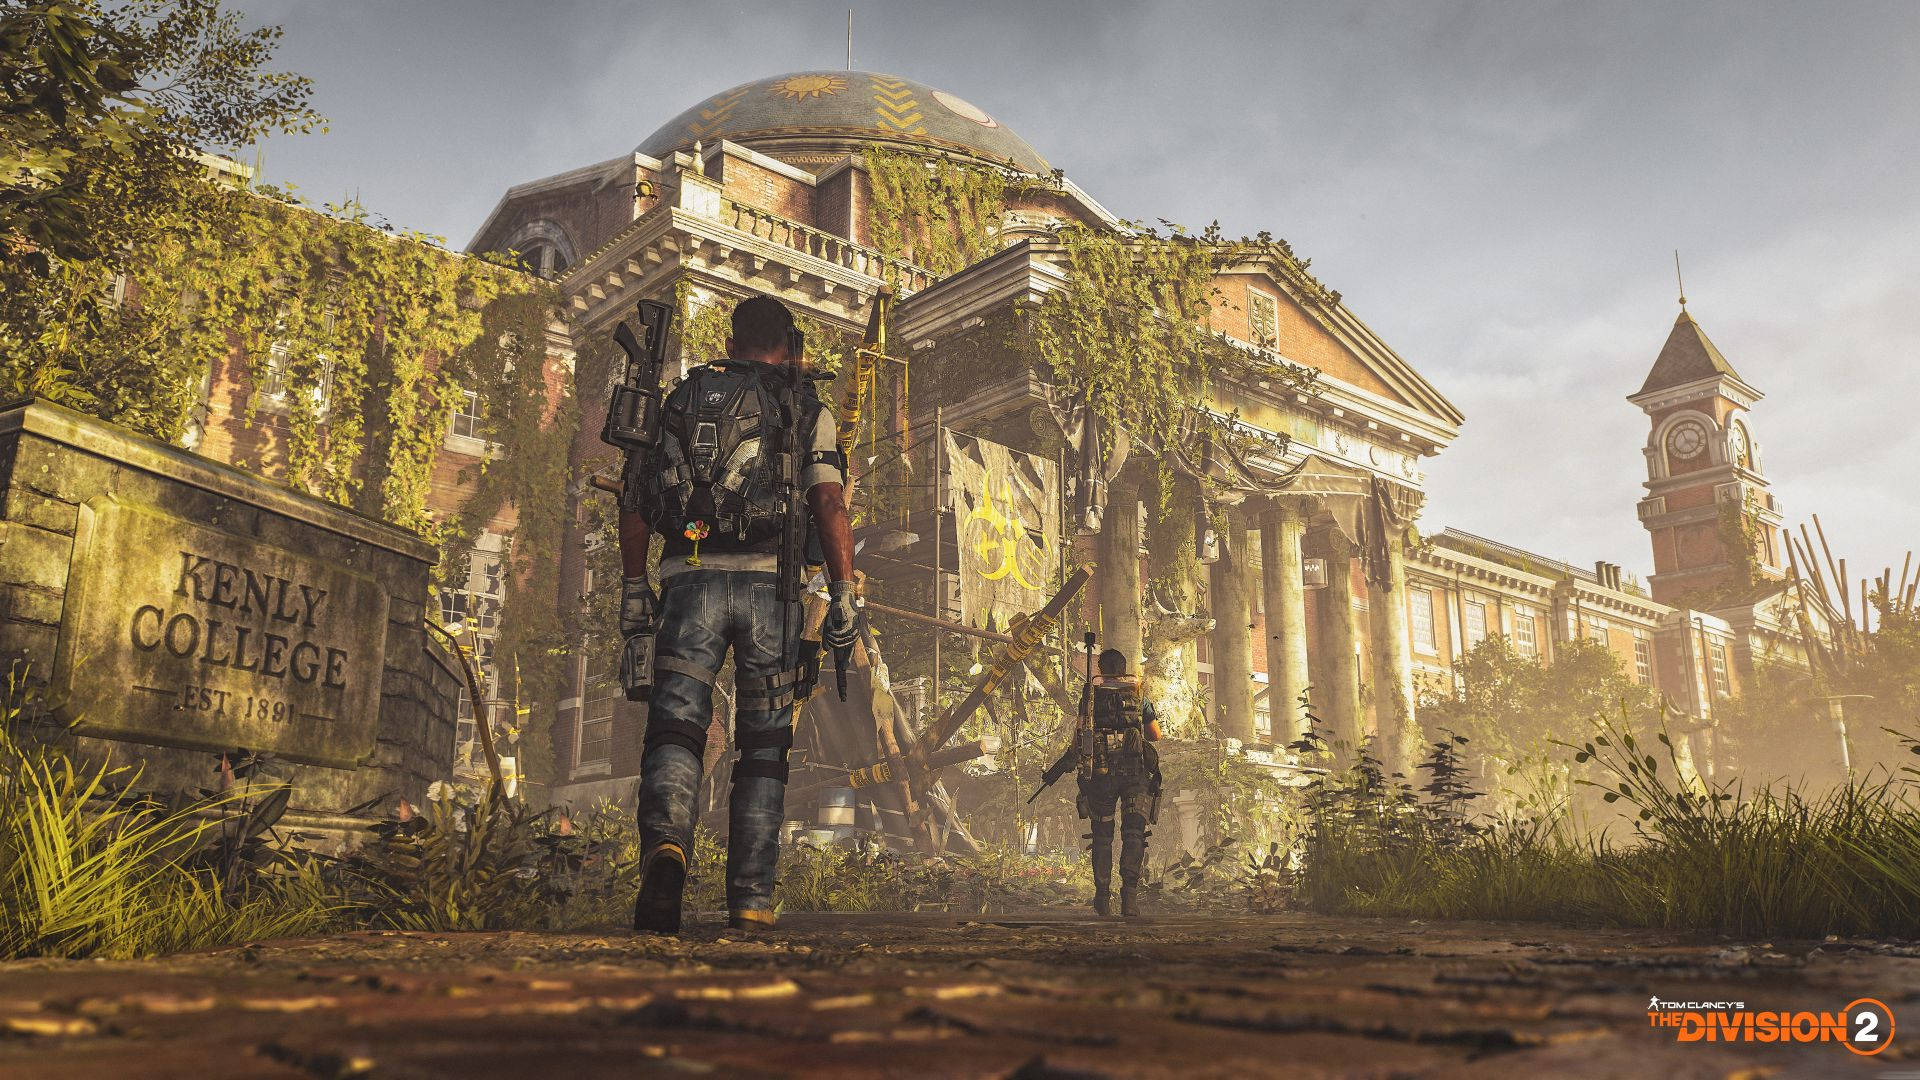 Tom Clancy's The Division 2 Episodes, E3 2019, screenshot, 4K (horizontal)